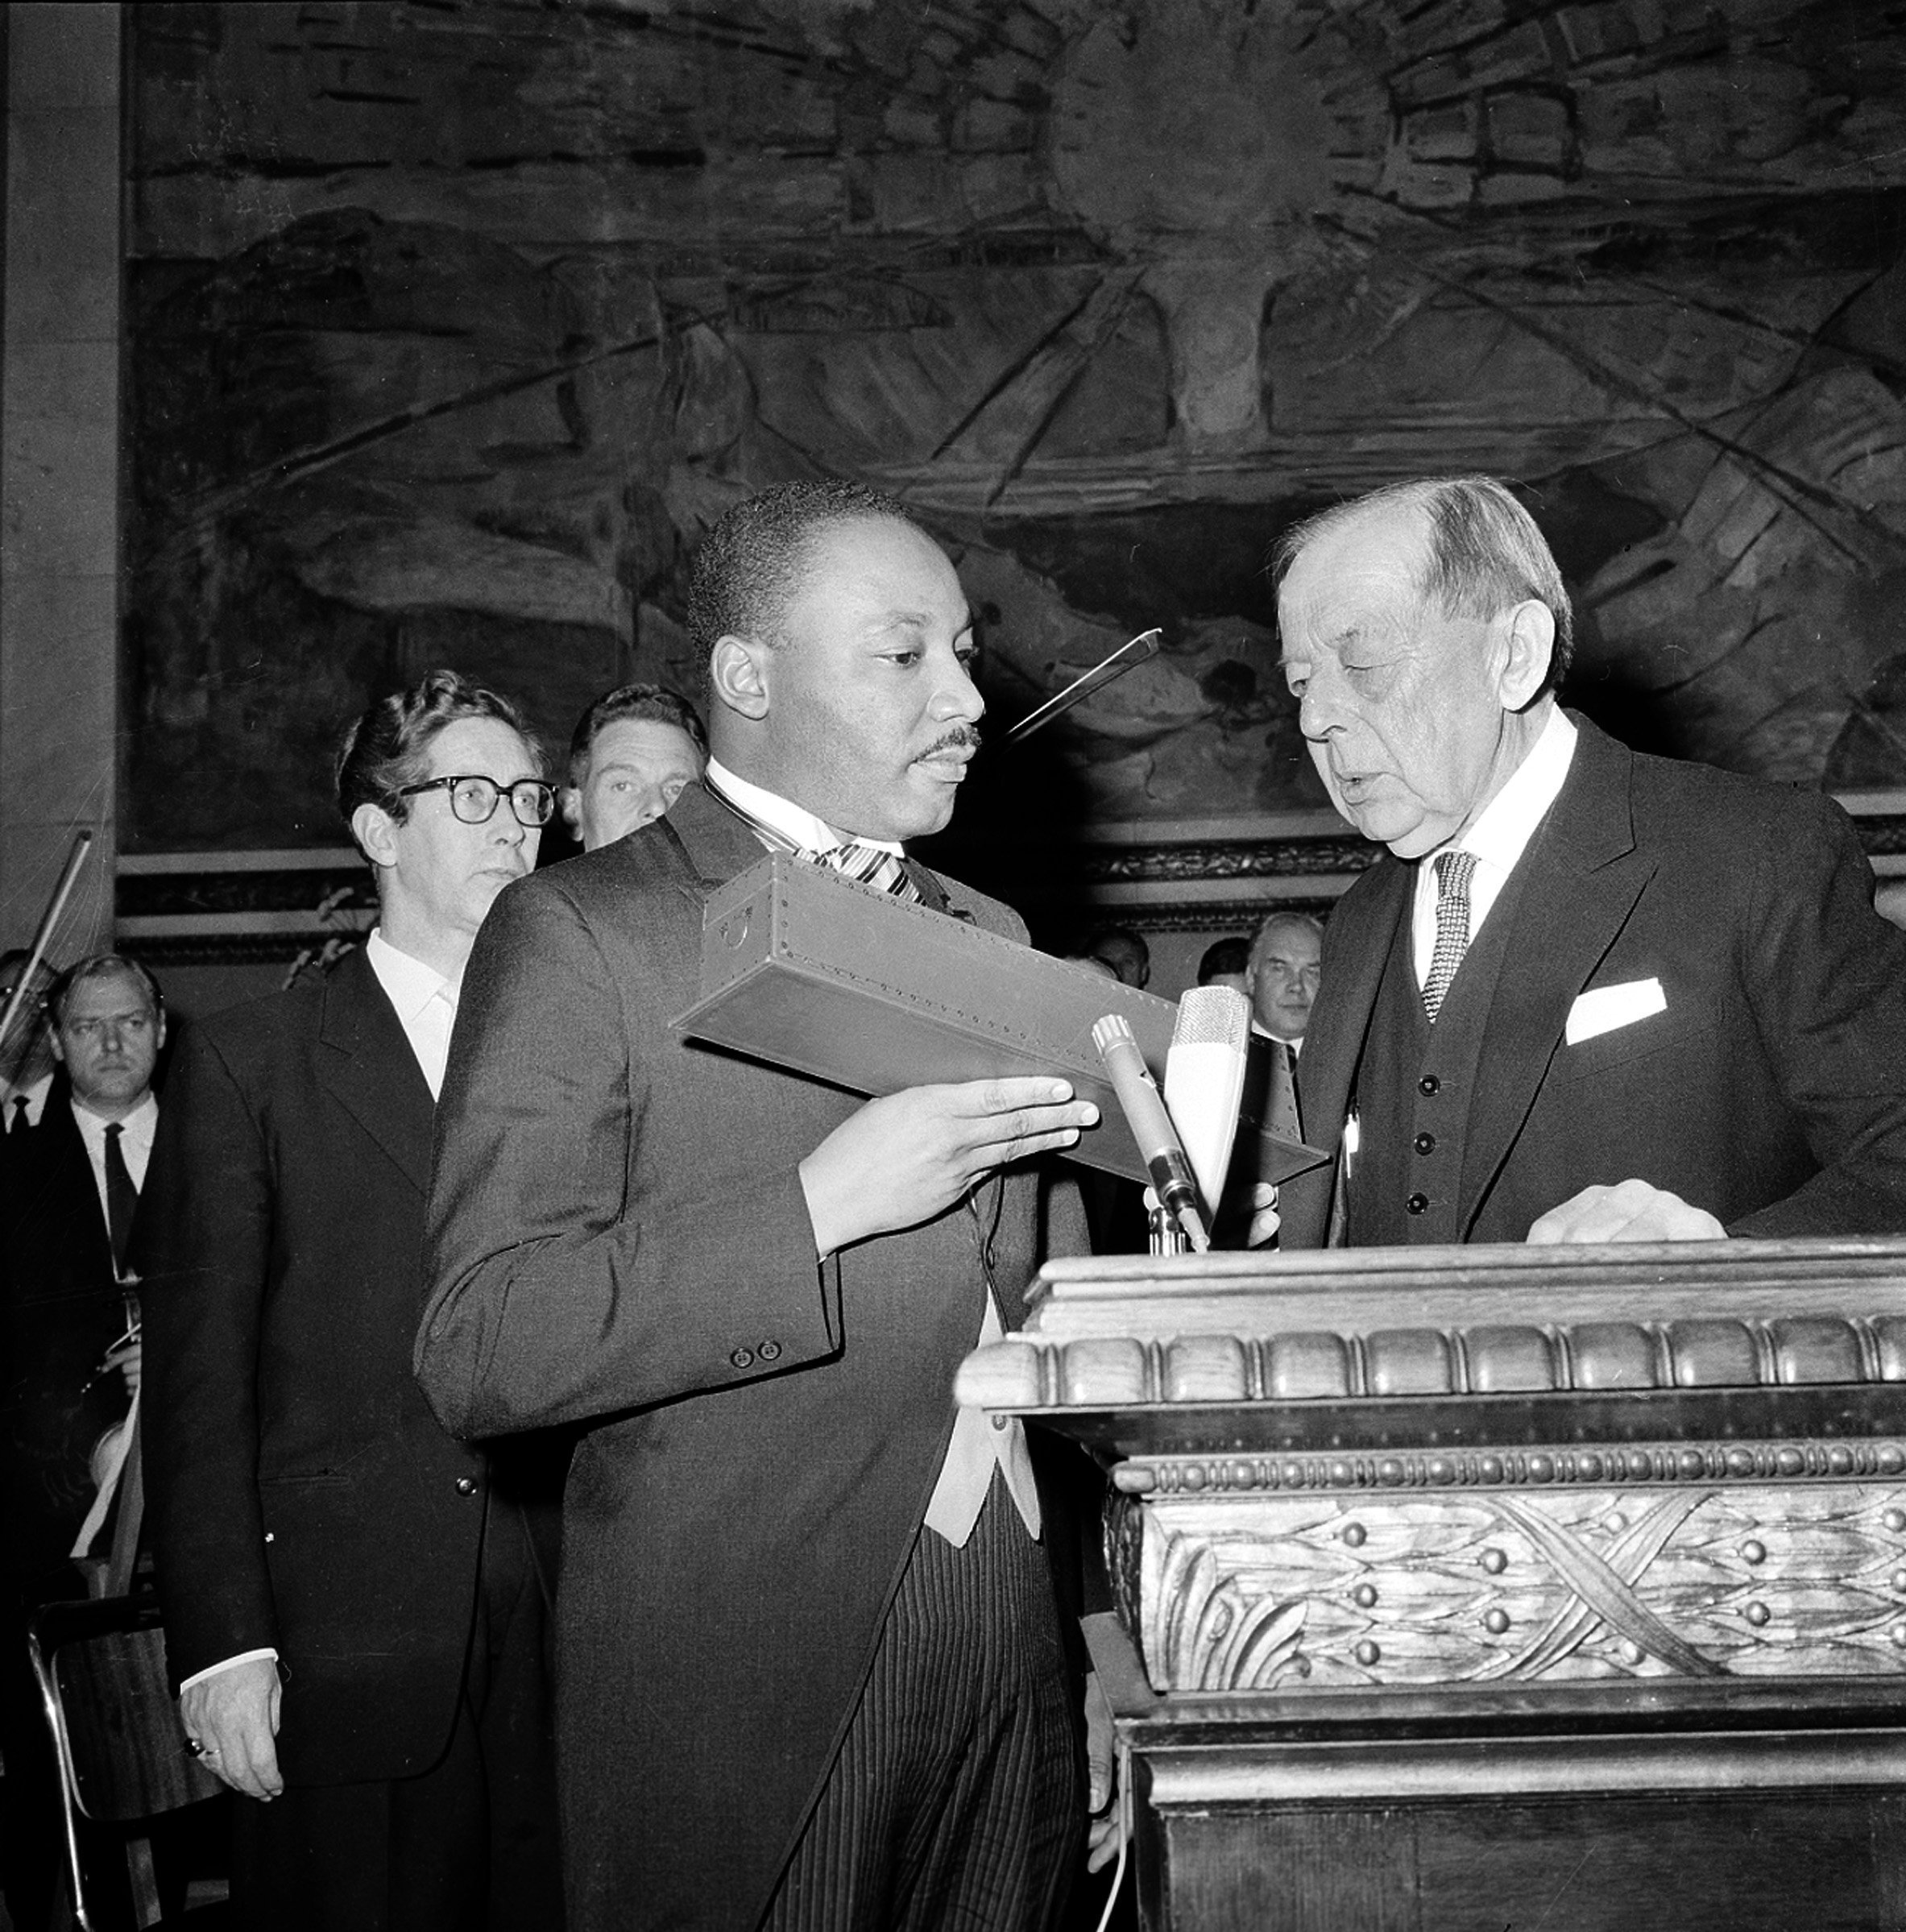 Dr. Martin Luther King Jr. receives Nobel Peace prize from Gunnar Jahn, the chairman of the Nobel Committee in Oslo, Norway in 1964